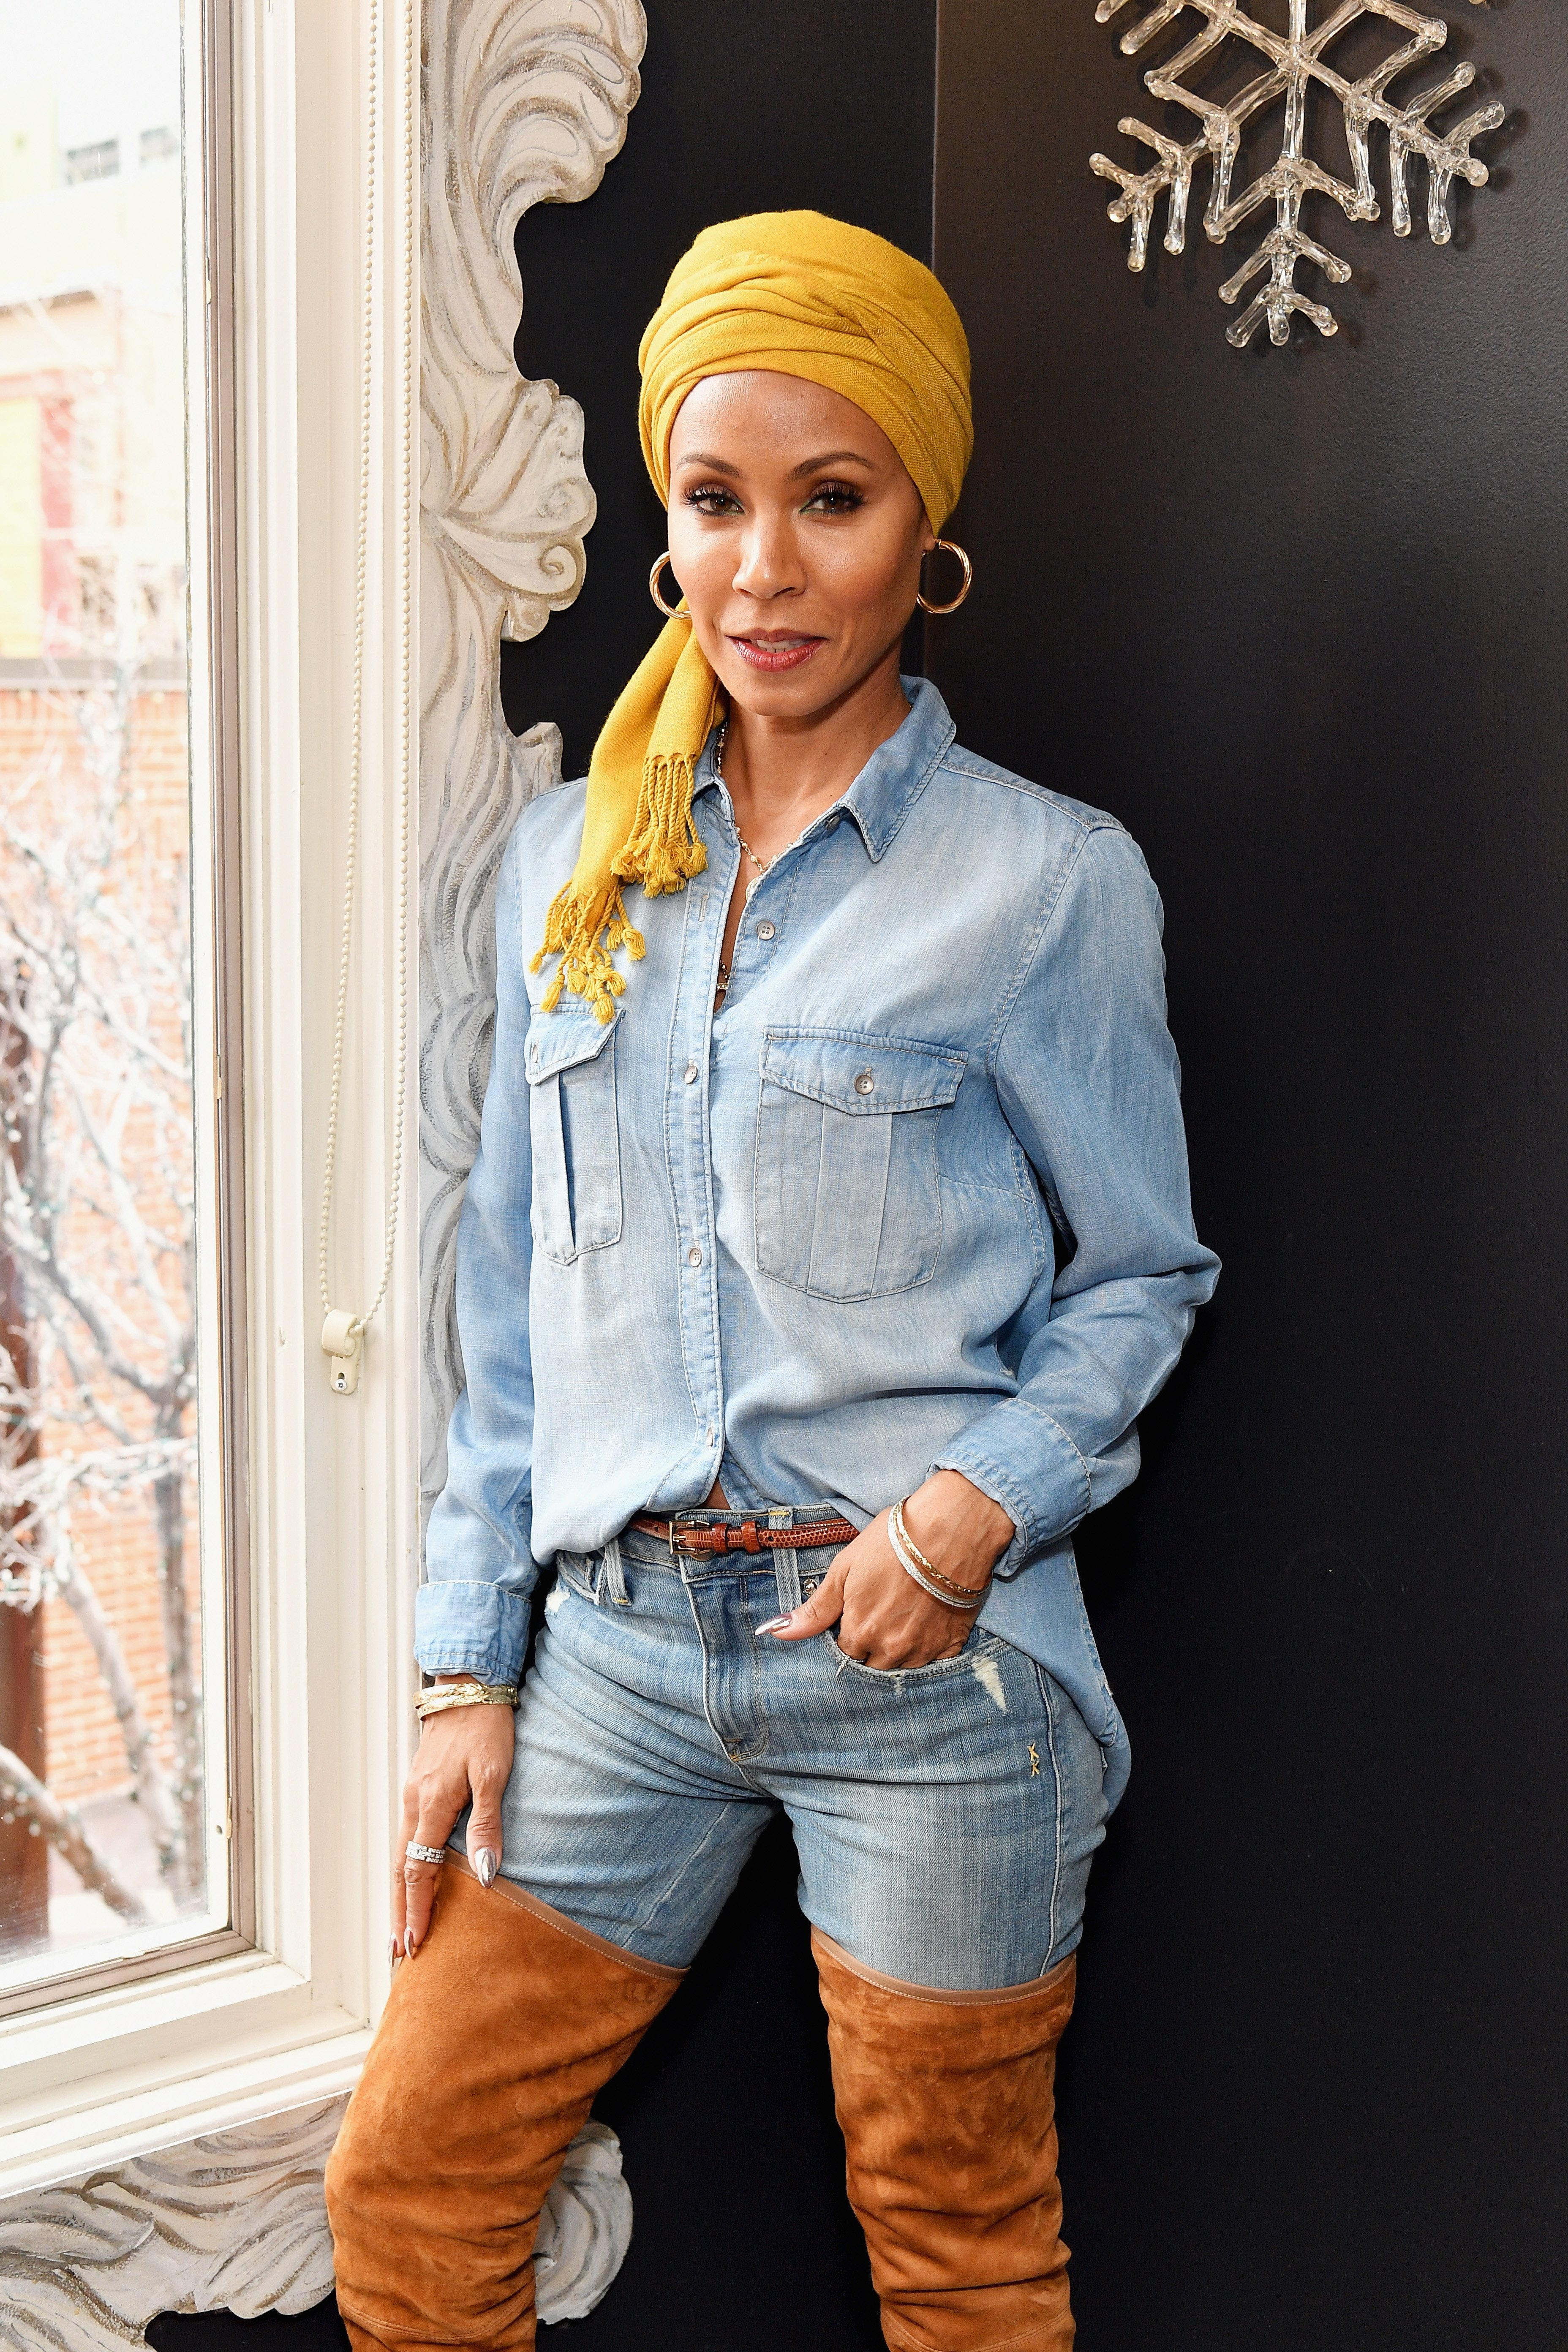 Actress Jada Pinkett Smith attends the Feature Film Jury Orientation Breakfast during the 2018 Sundance Film Festival at Cafe Terigo on January 19, 2018| Photo: Getty Images